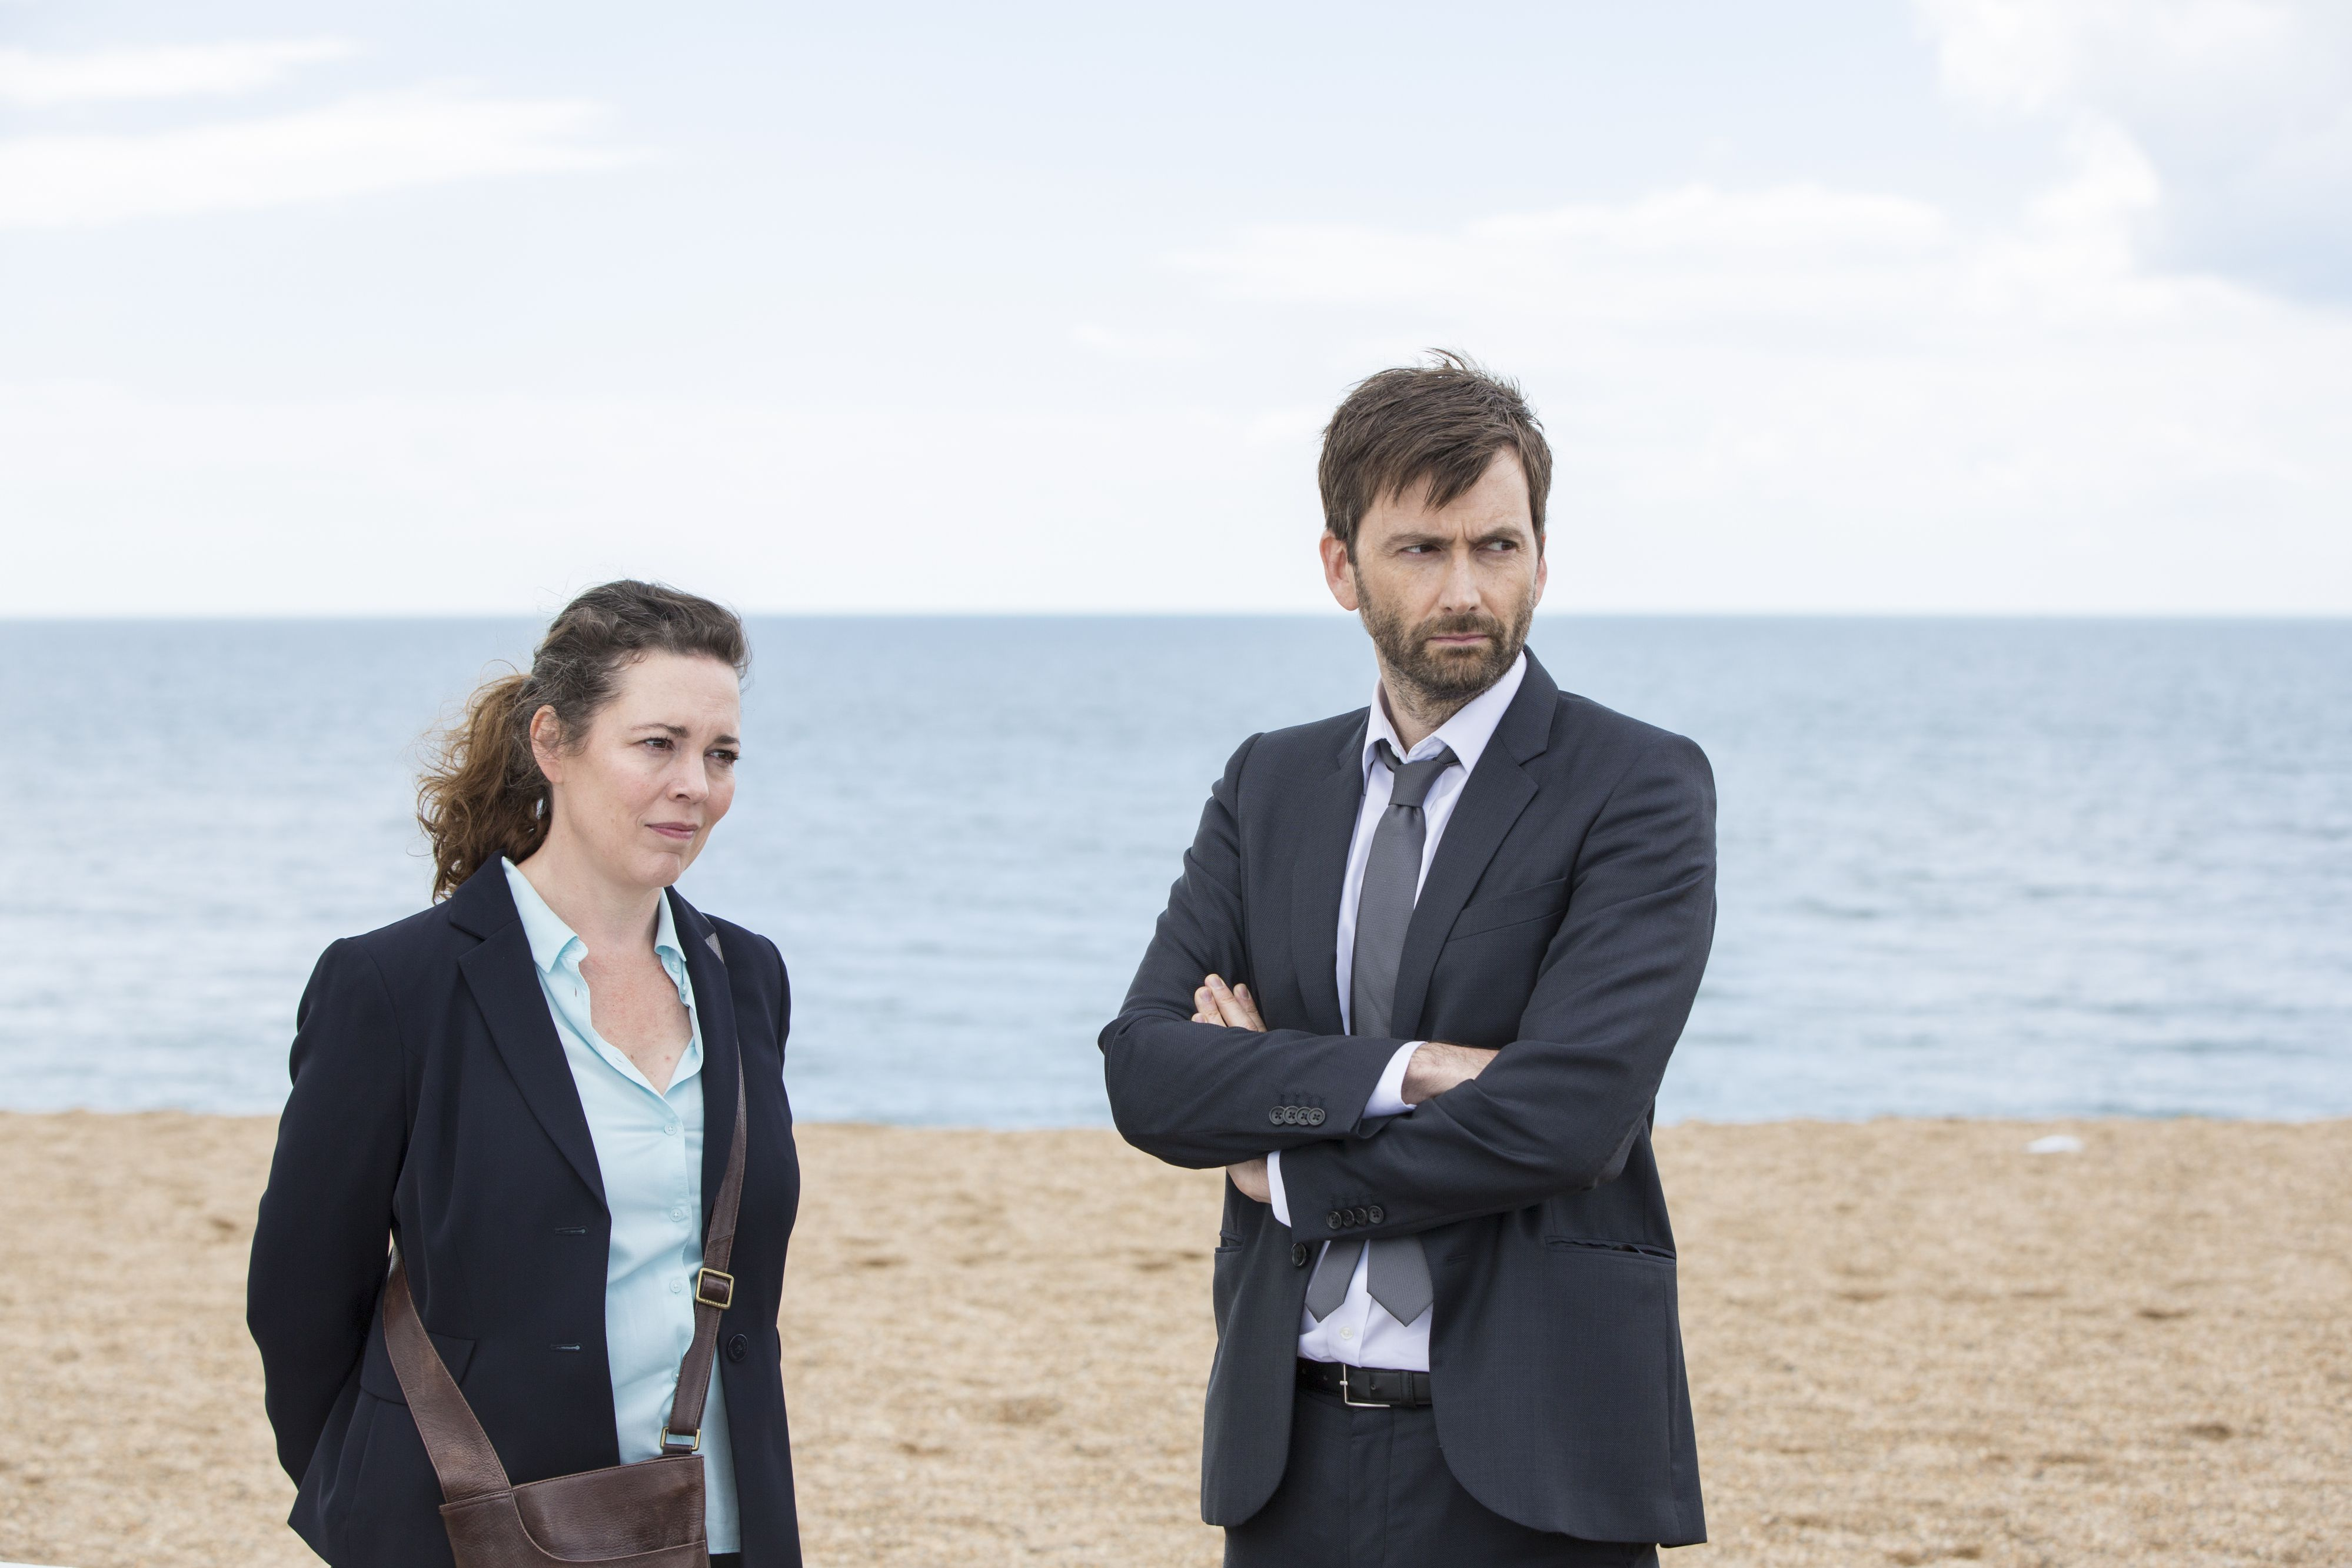 Broadchurch rapist's rationale is a horrifying reminder that these stories aren't purely fictional